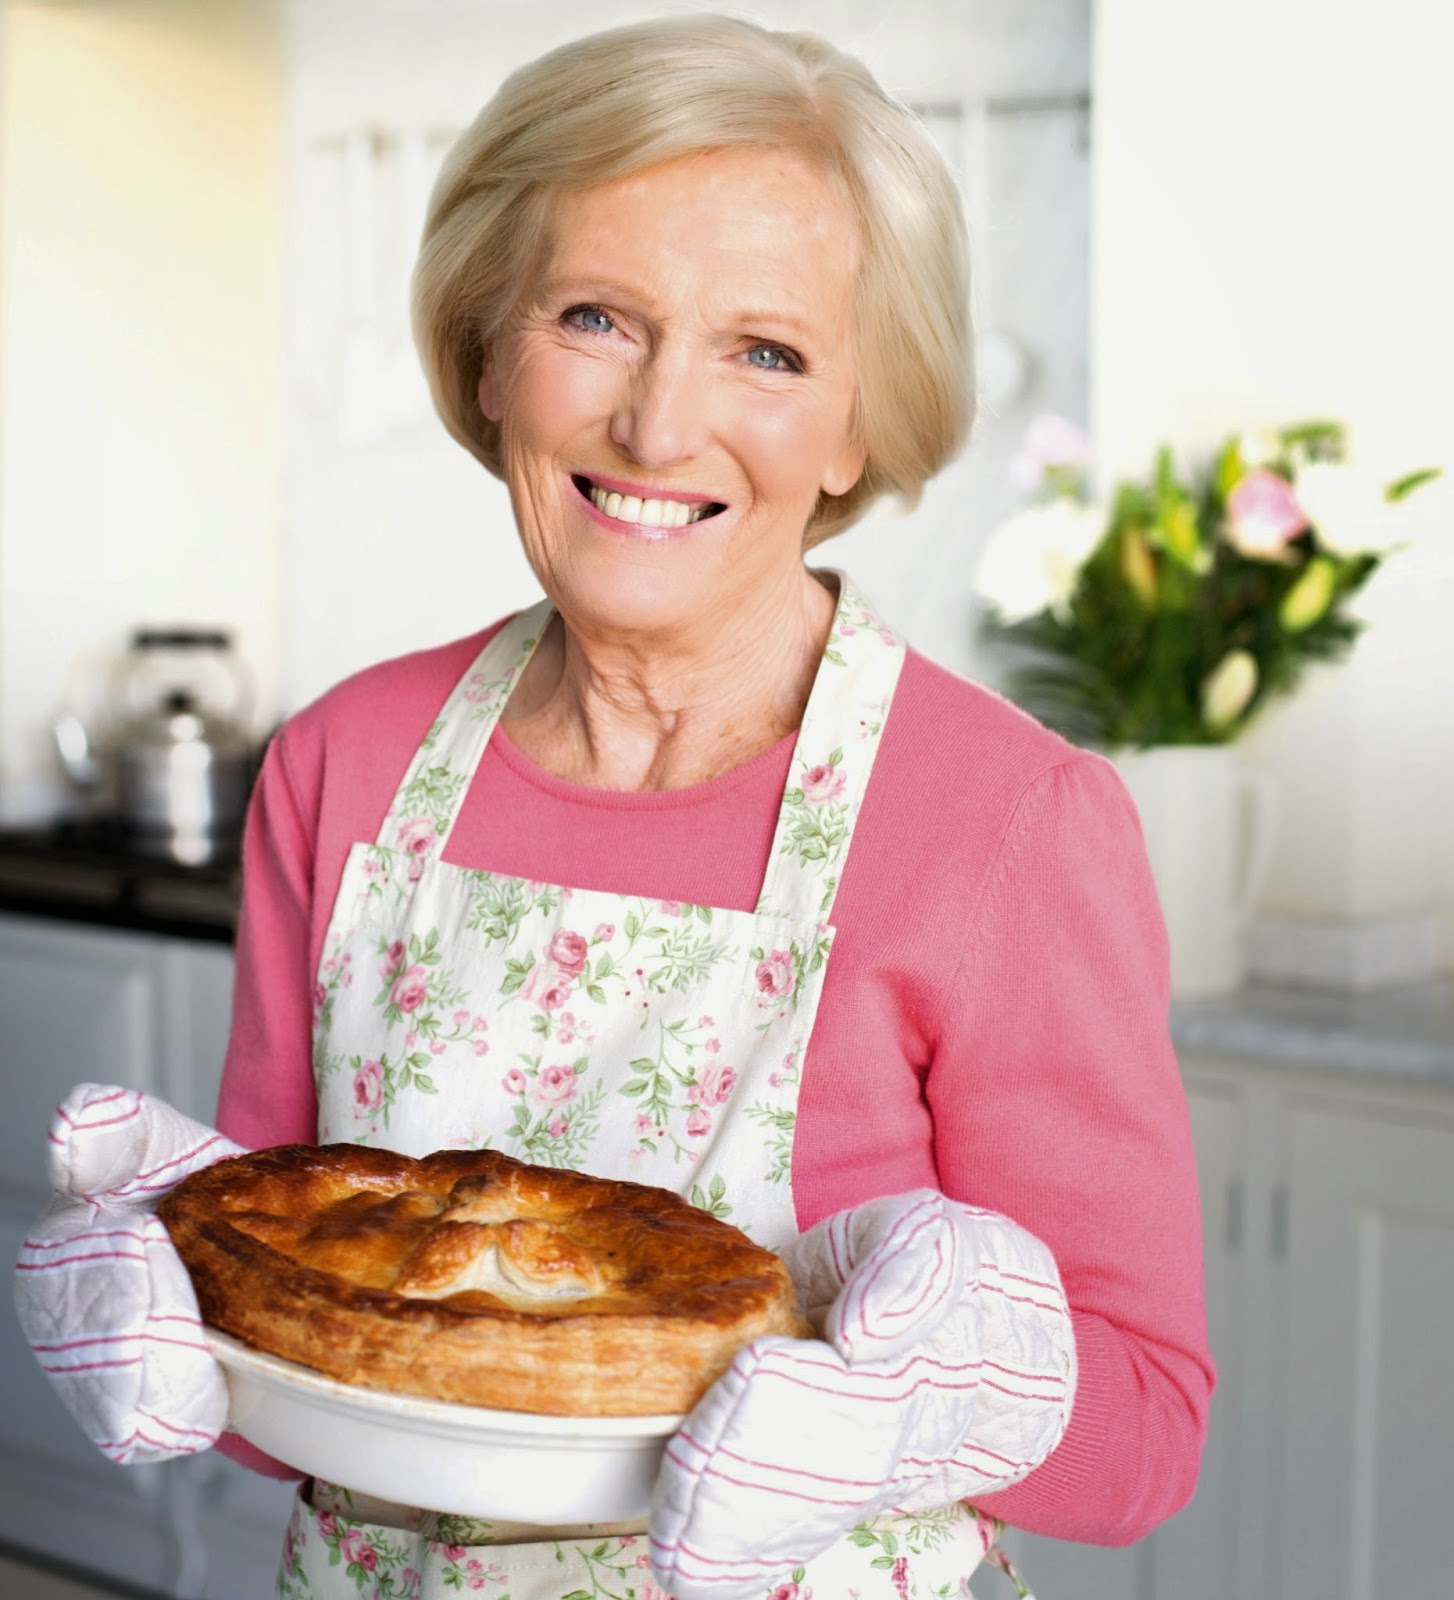 in the oven the queen of cakes mary berry